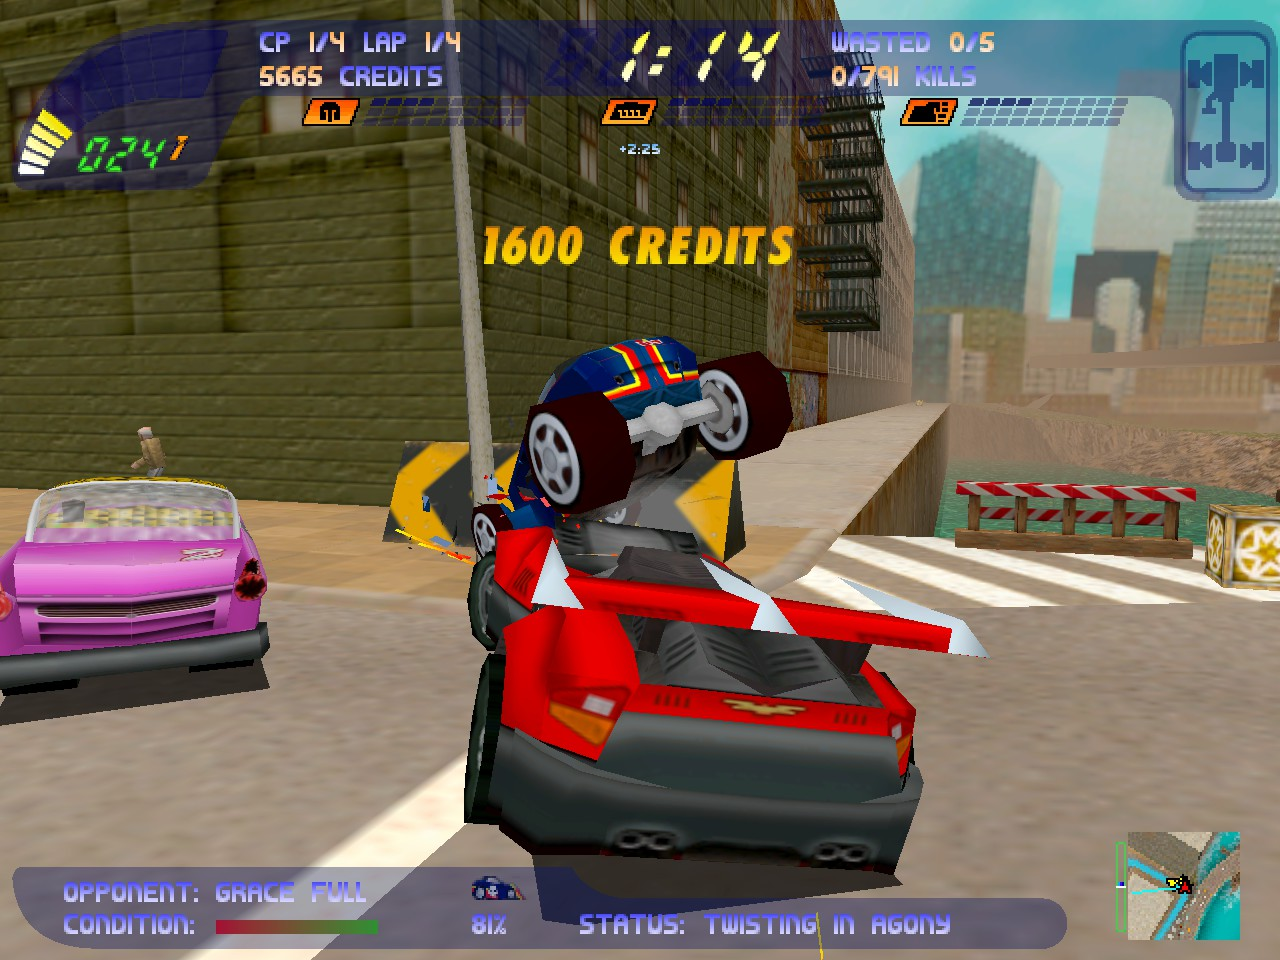 Carmageddon 2 PC screenshot 1998